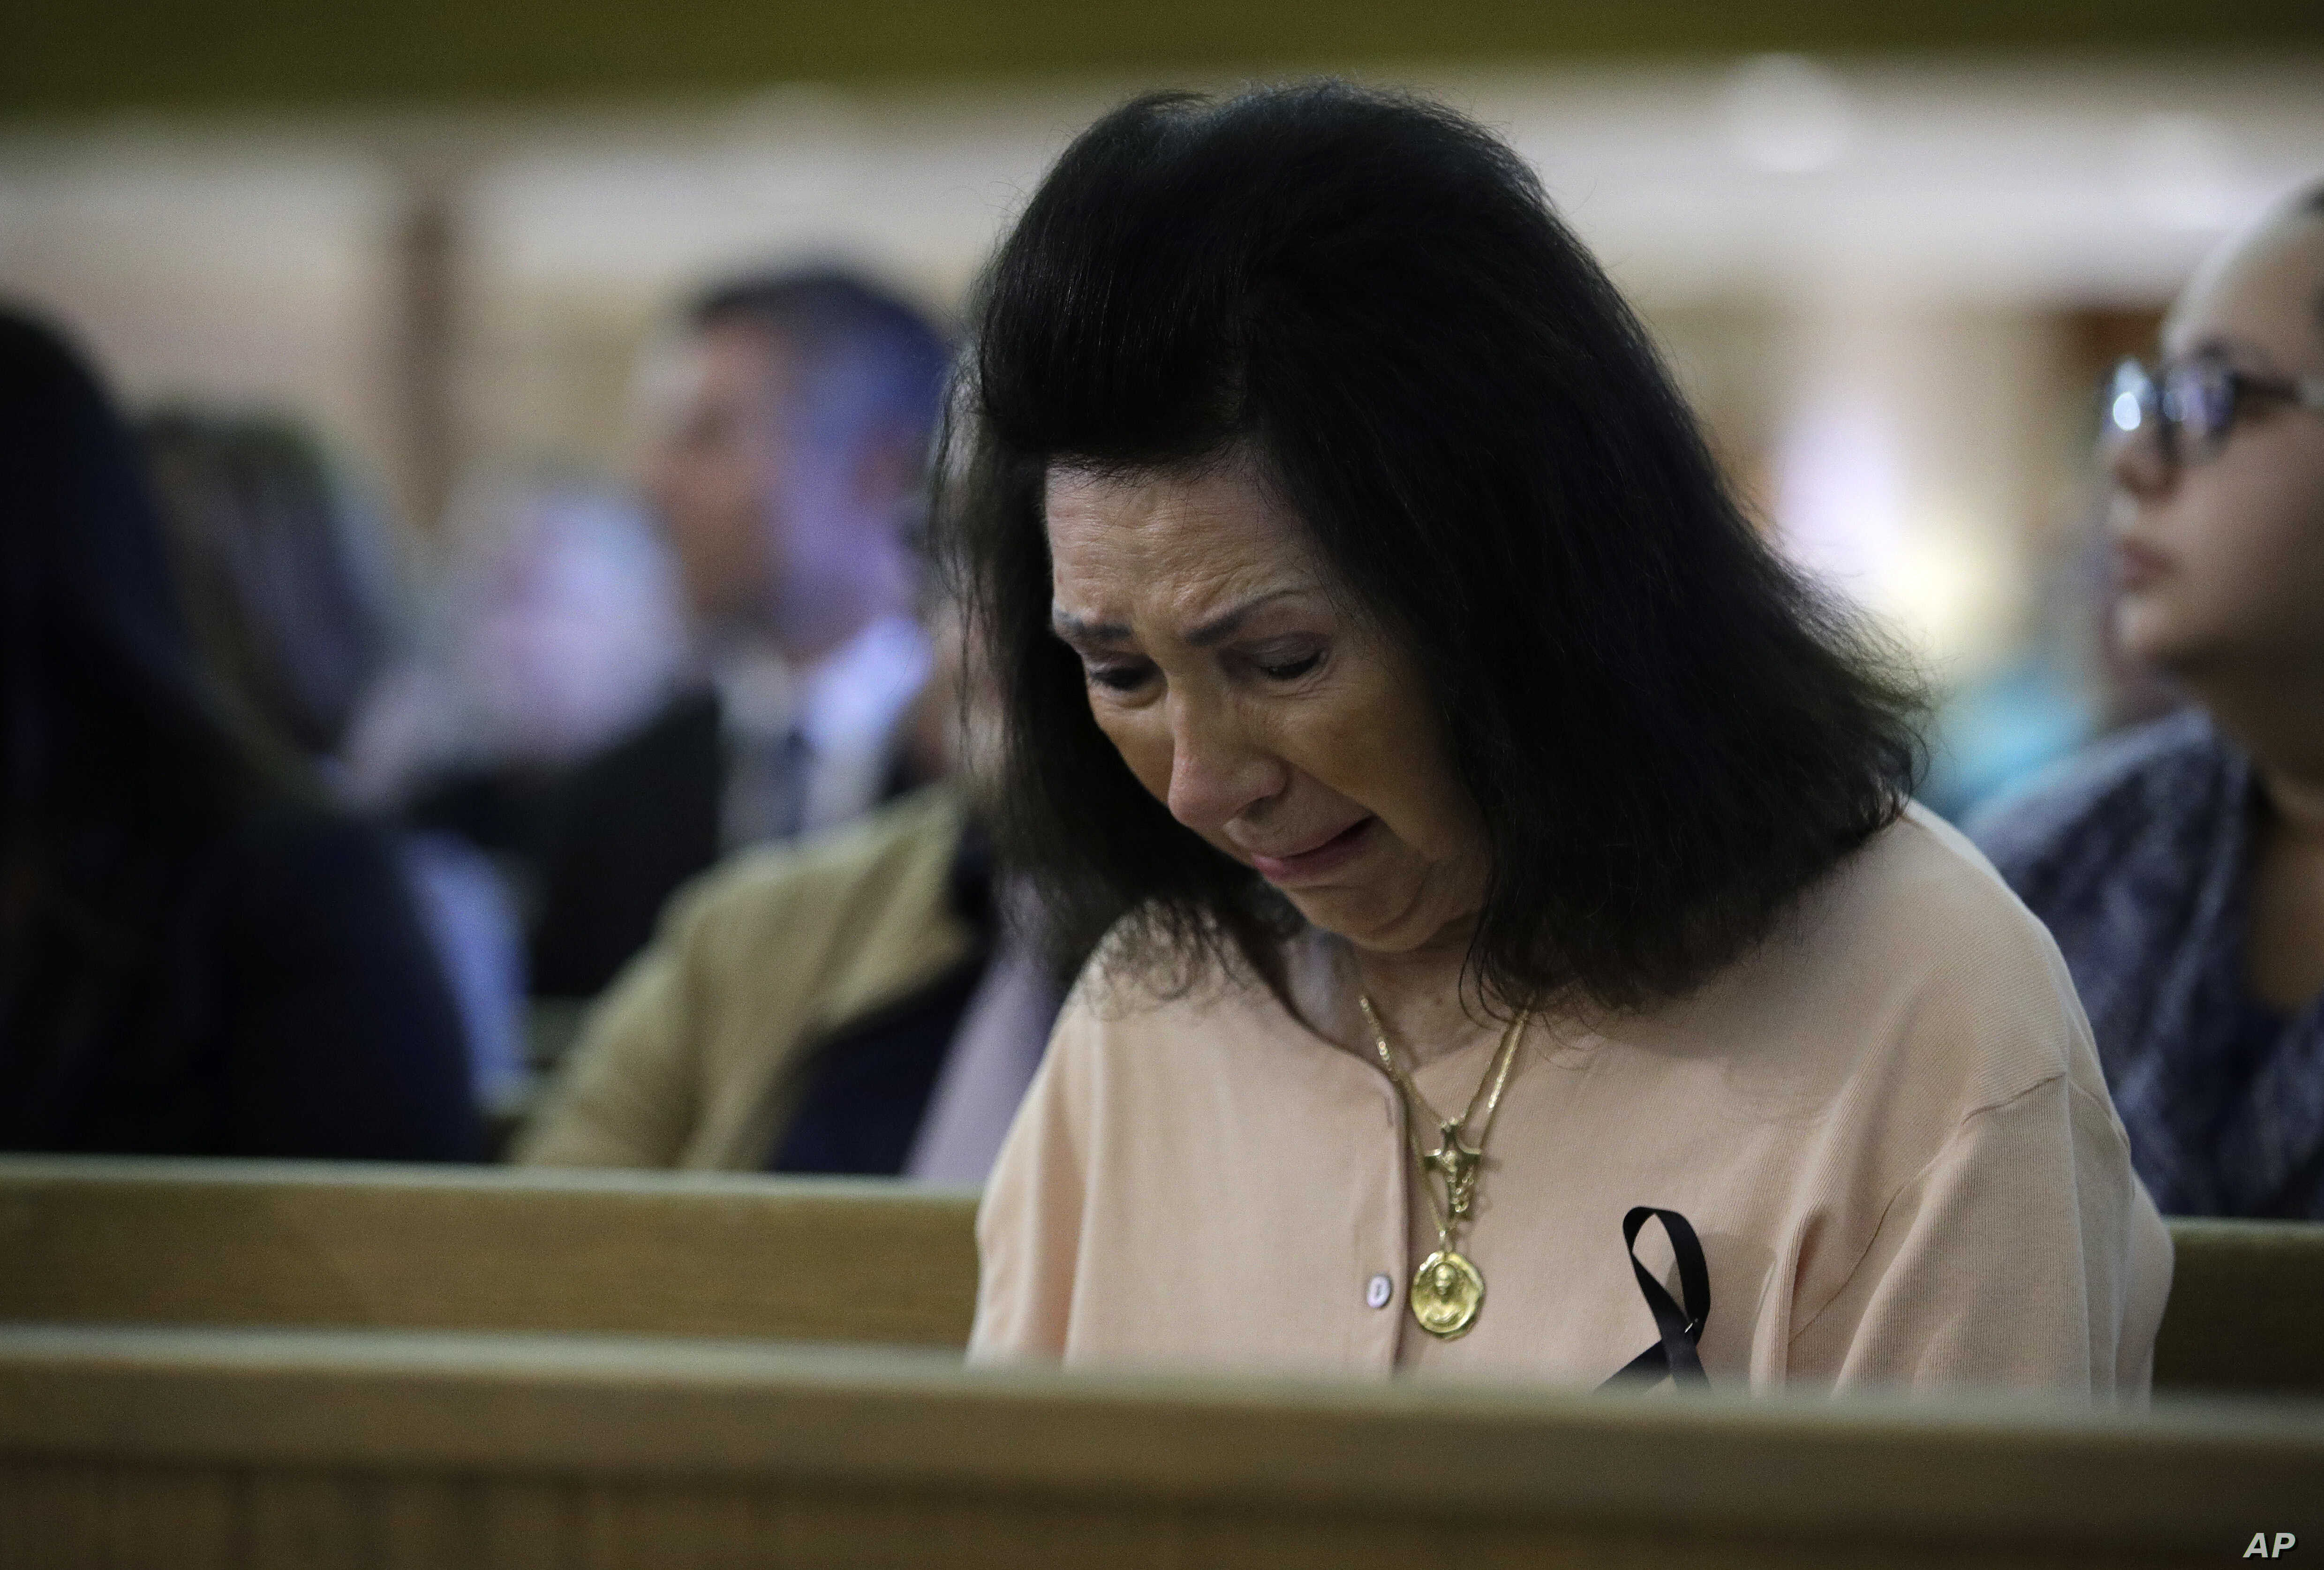 A woman reacts during a special service at Guardian Angel Cathedral after the mass shooting on the Las Vegas Strip, Oct. 2, 2017, in Las Vegas.